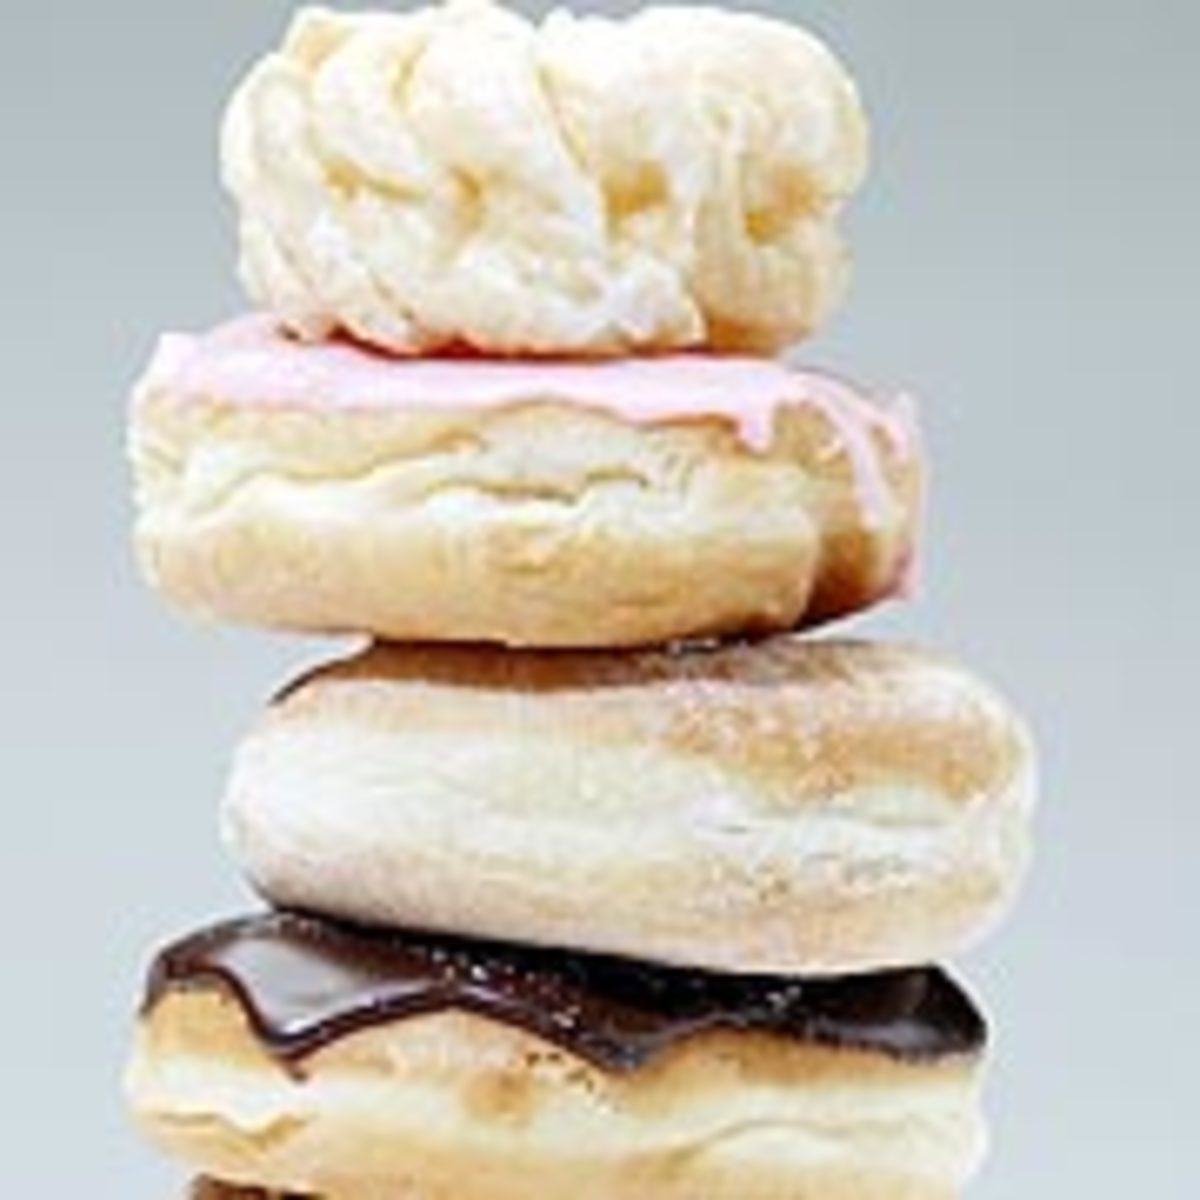 Jelly and creme-filled doughnuts